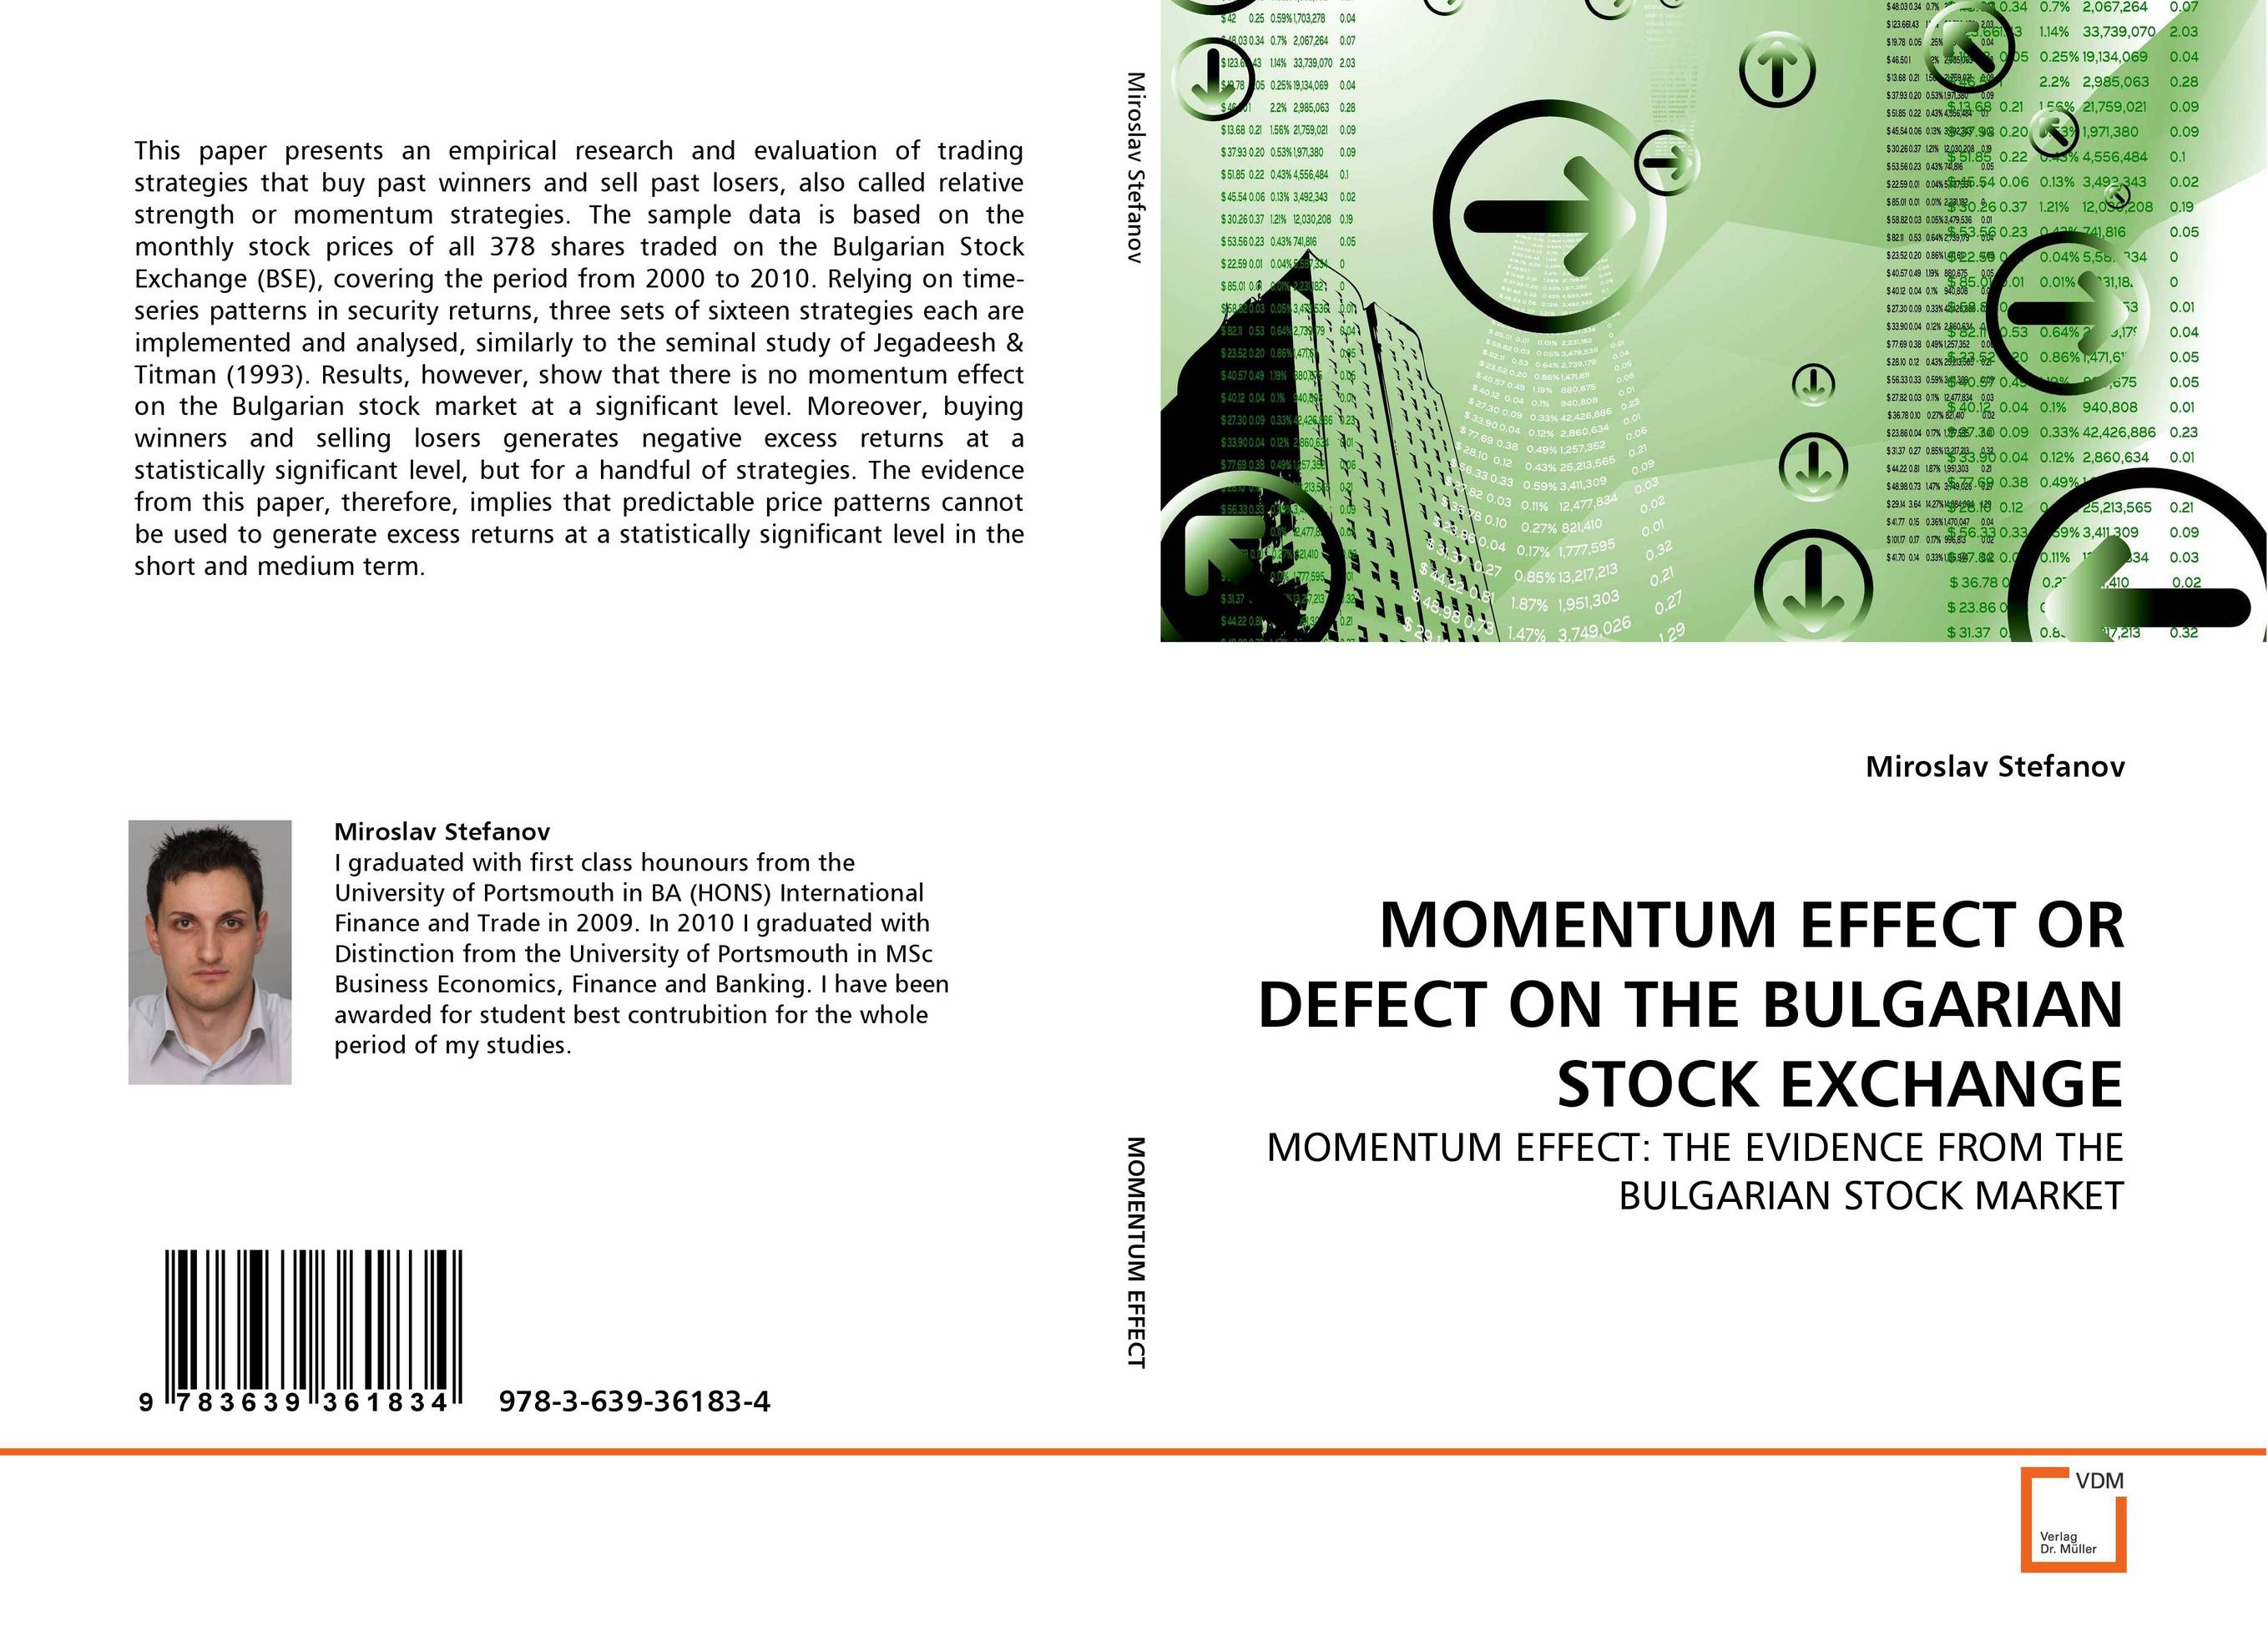 MOMENTUM EFFECT OR DEFECT ON THE BULGARIAN STOCK EXCHANGE